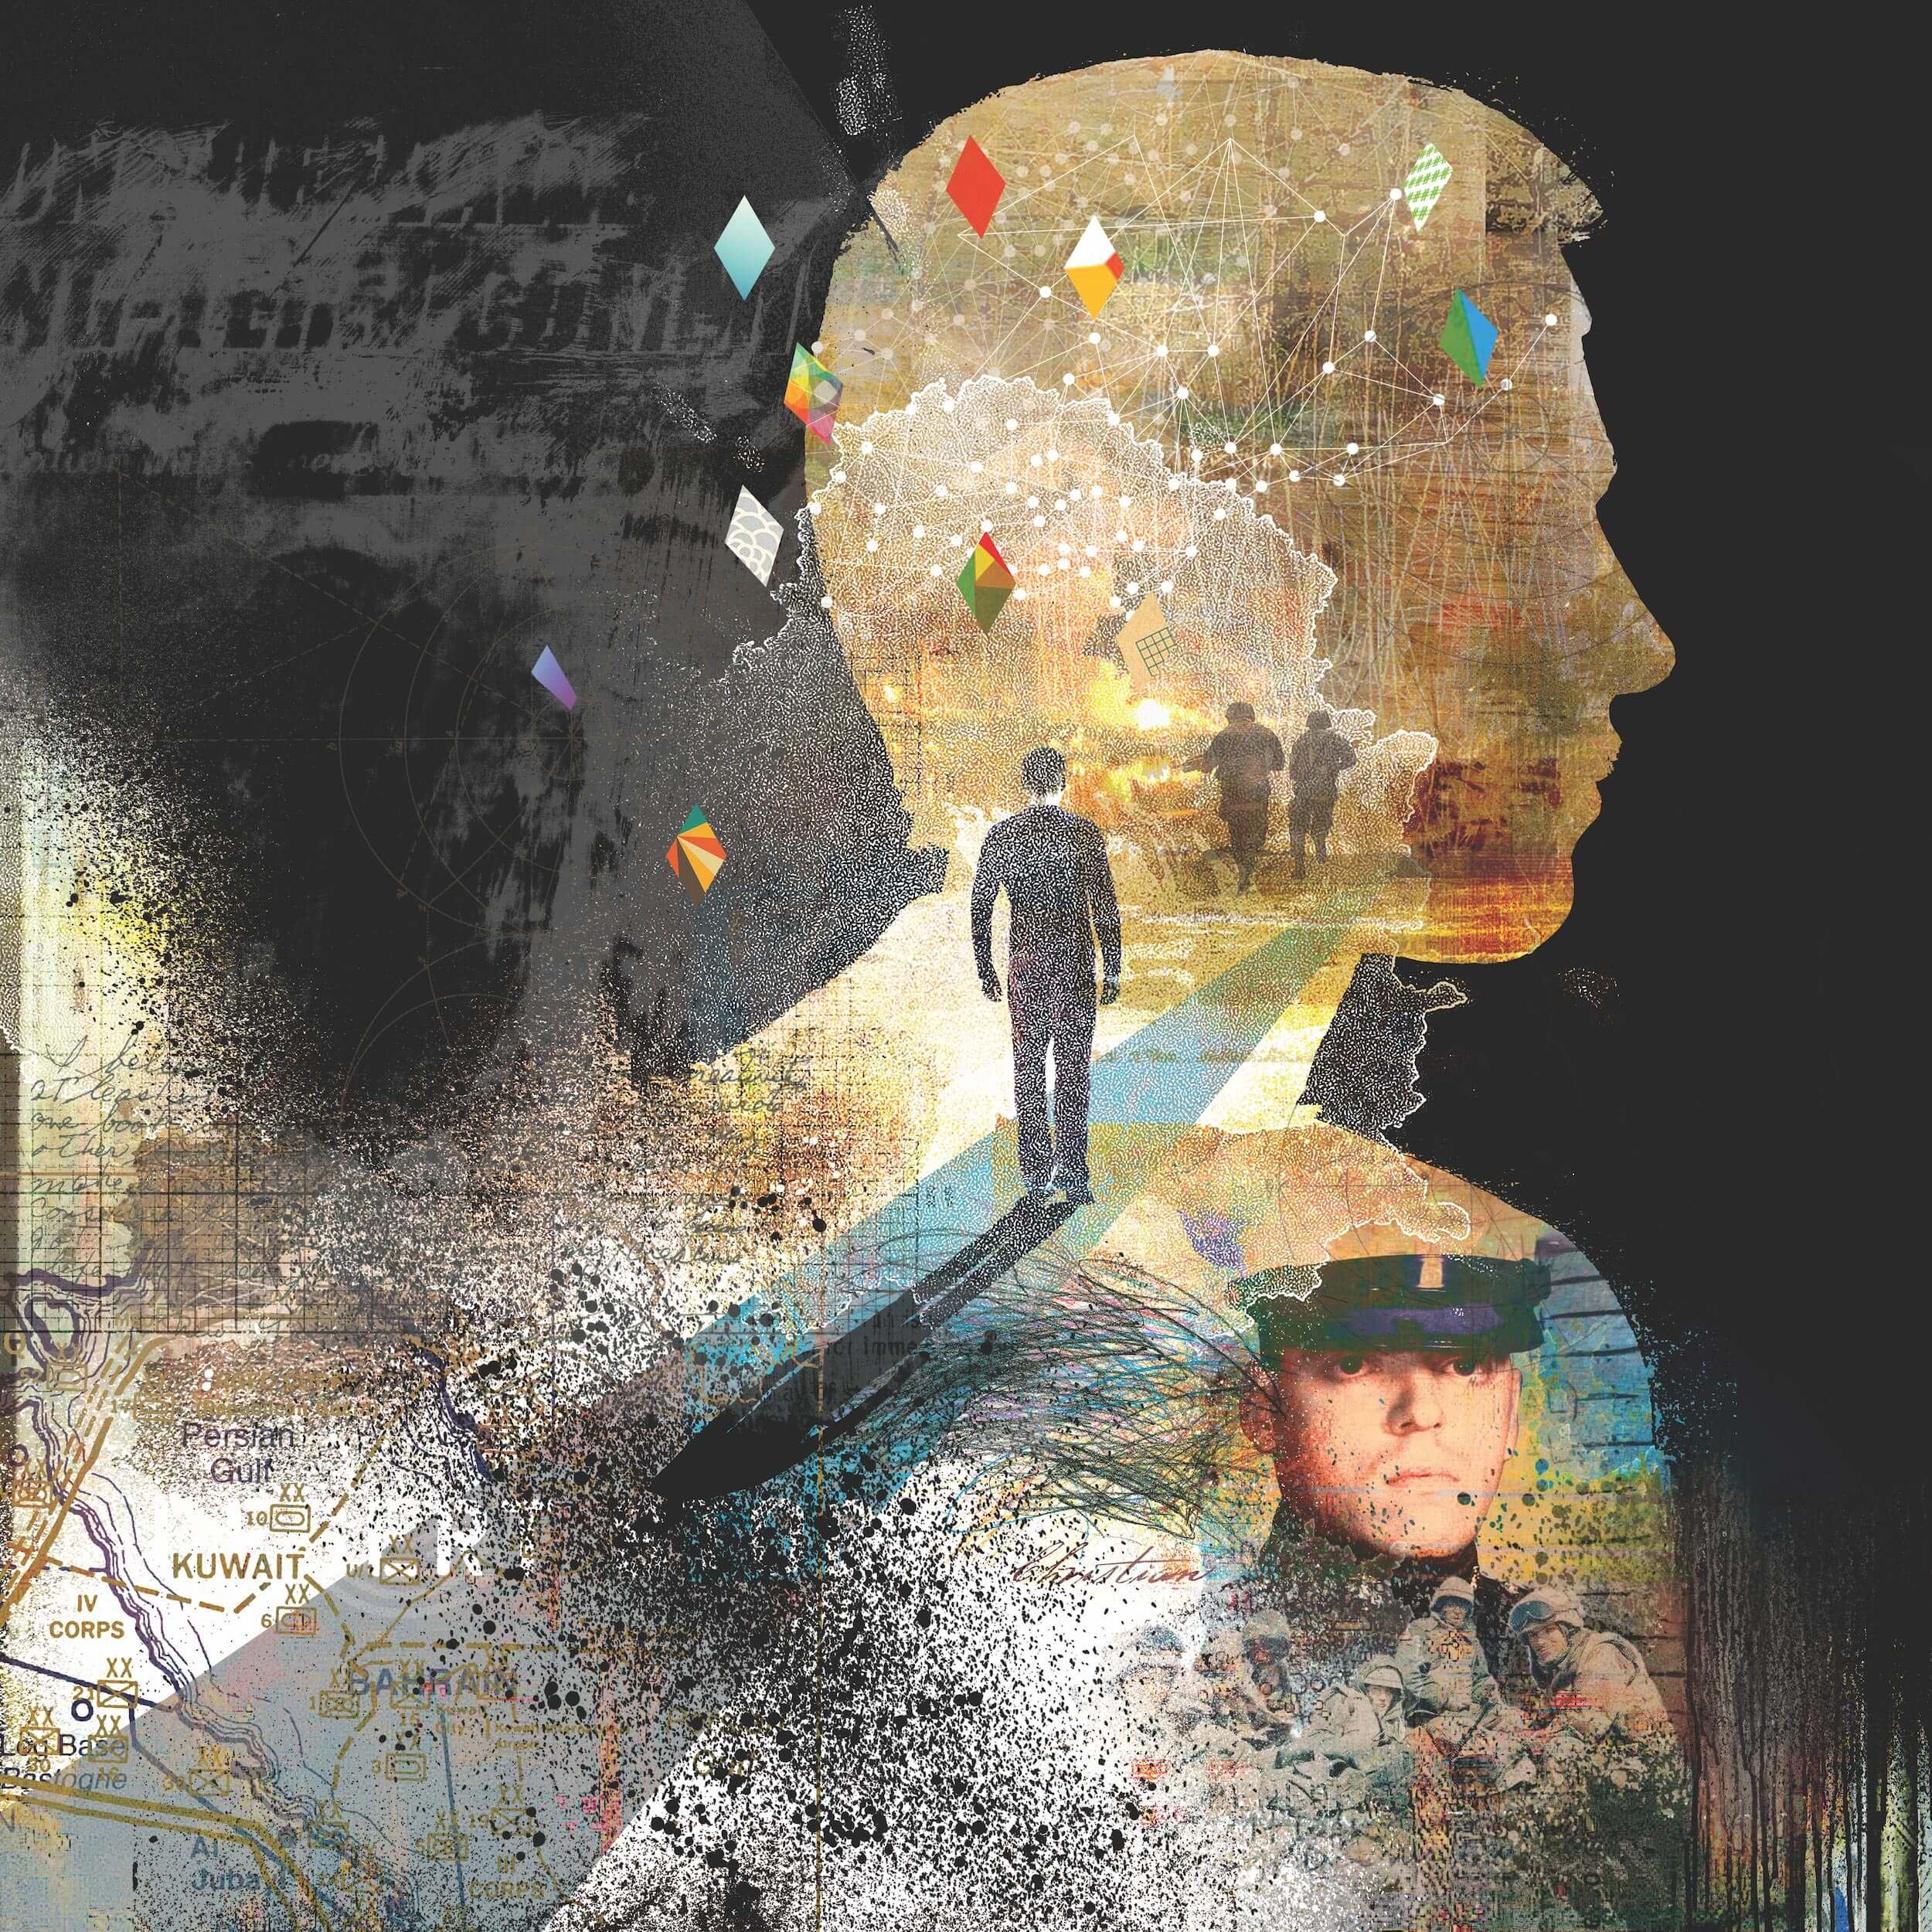 An illustration depicting the inner-turmoil of a soldier with PTSD